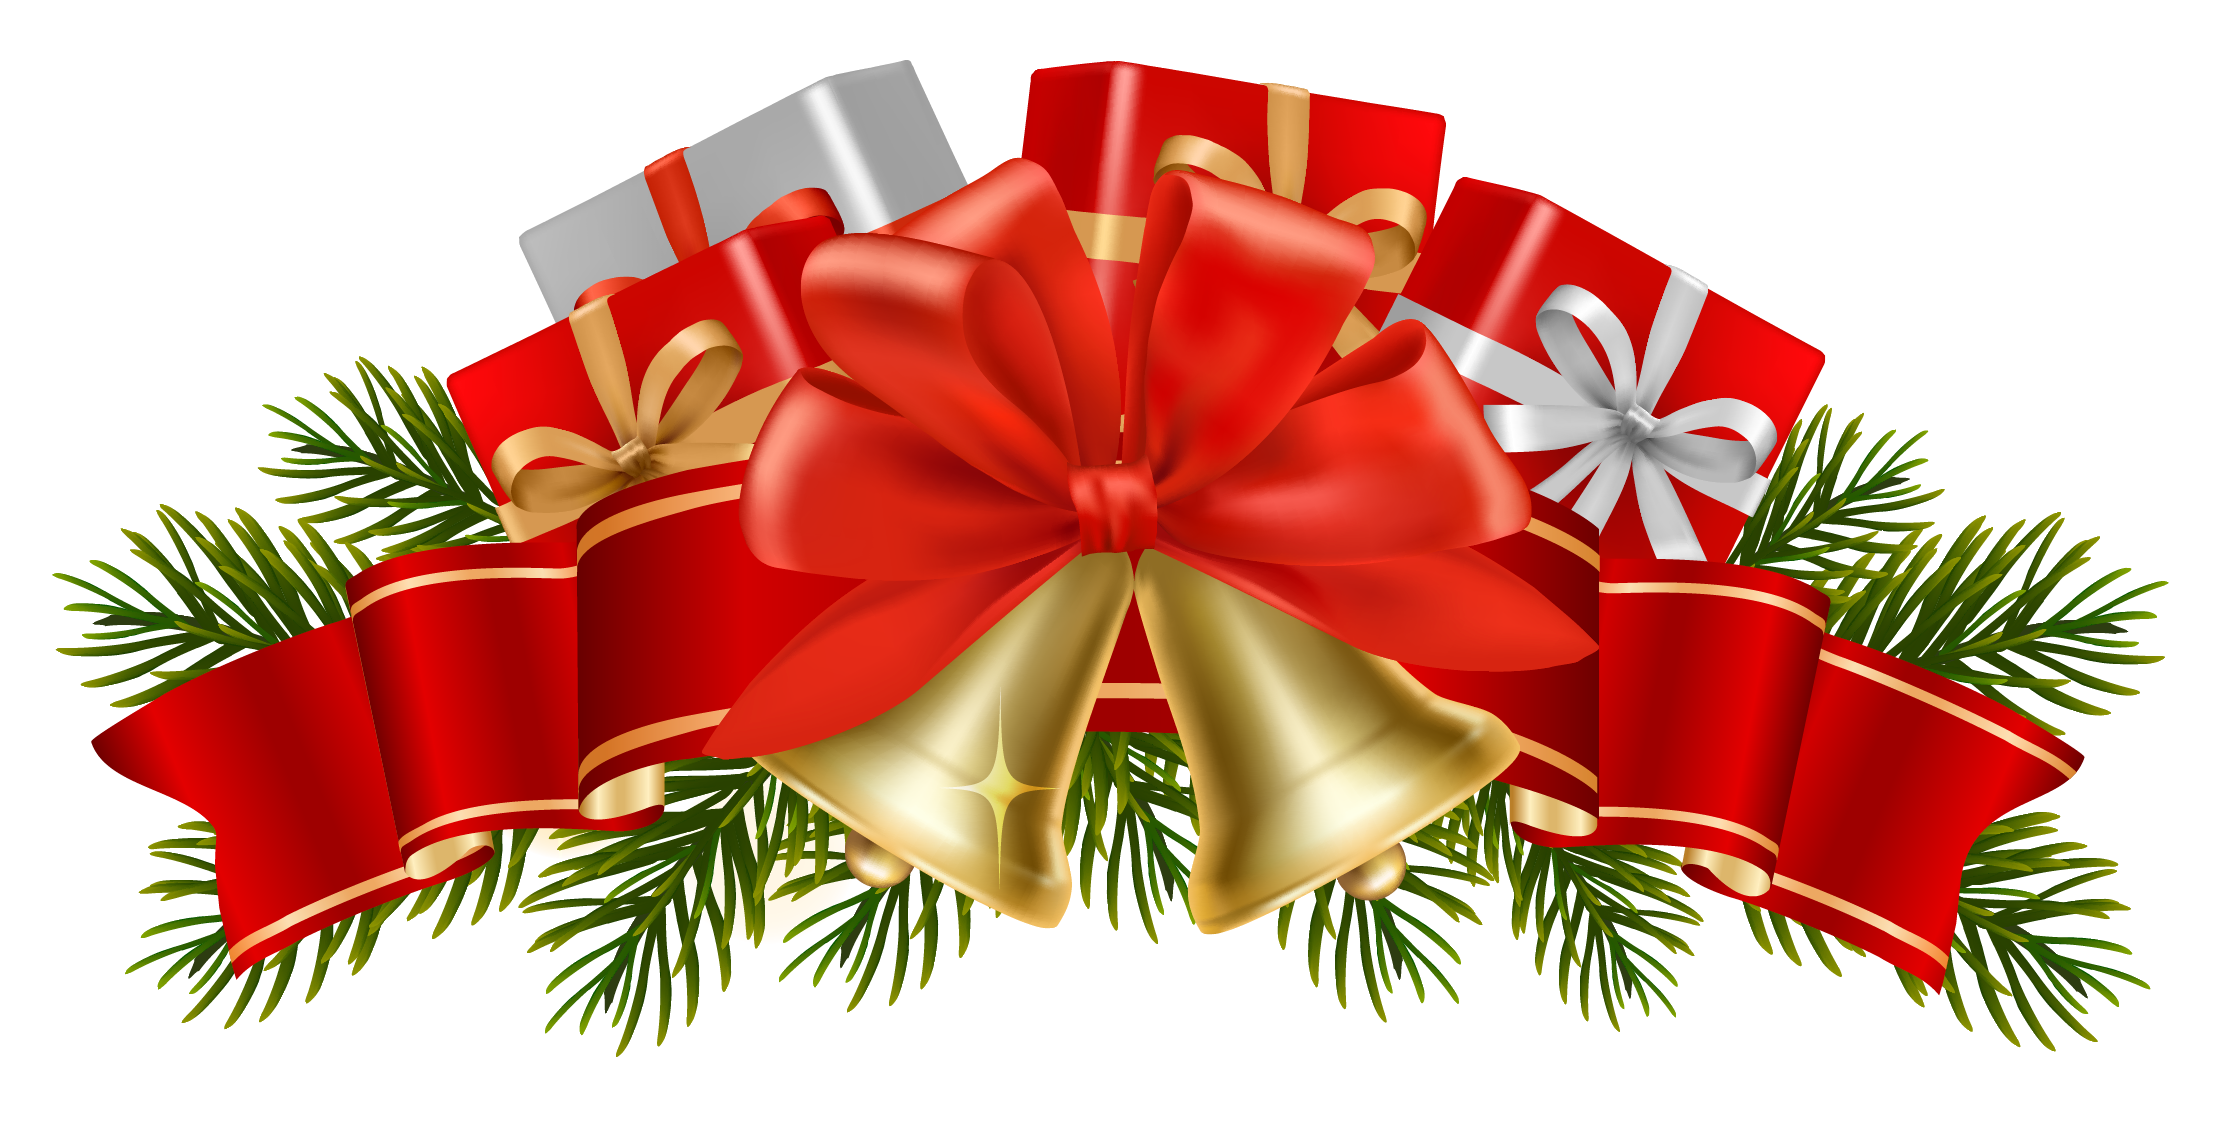 Merry transparent background jokingart. Clipart anchor christmas